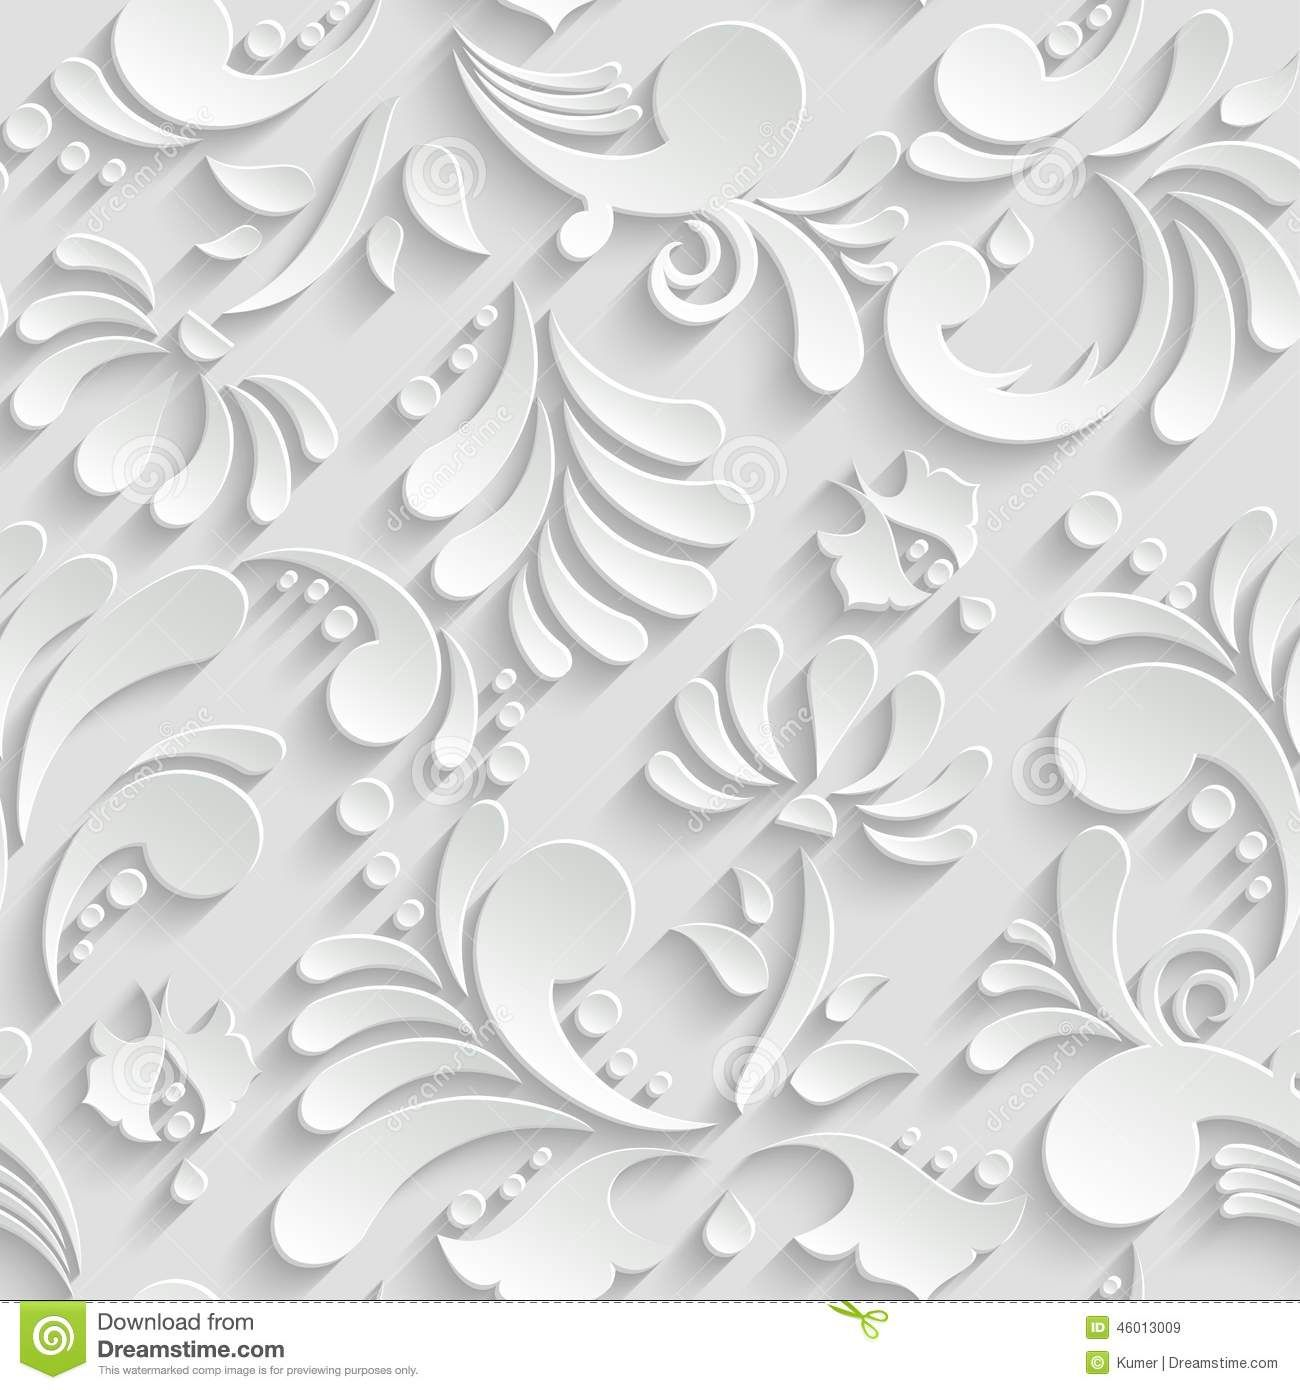 Abstract Floral 3d Seamless Pattern Floral, Sobres de